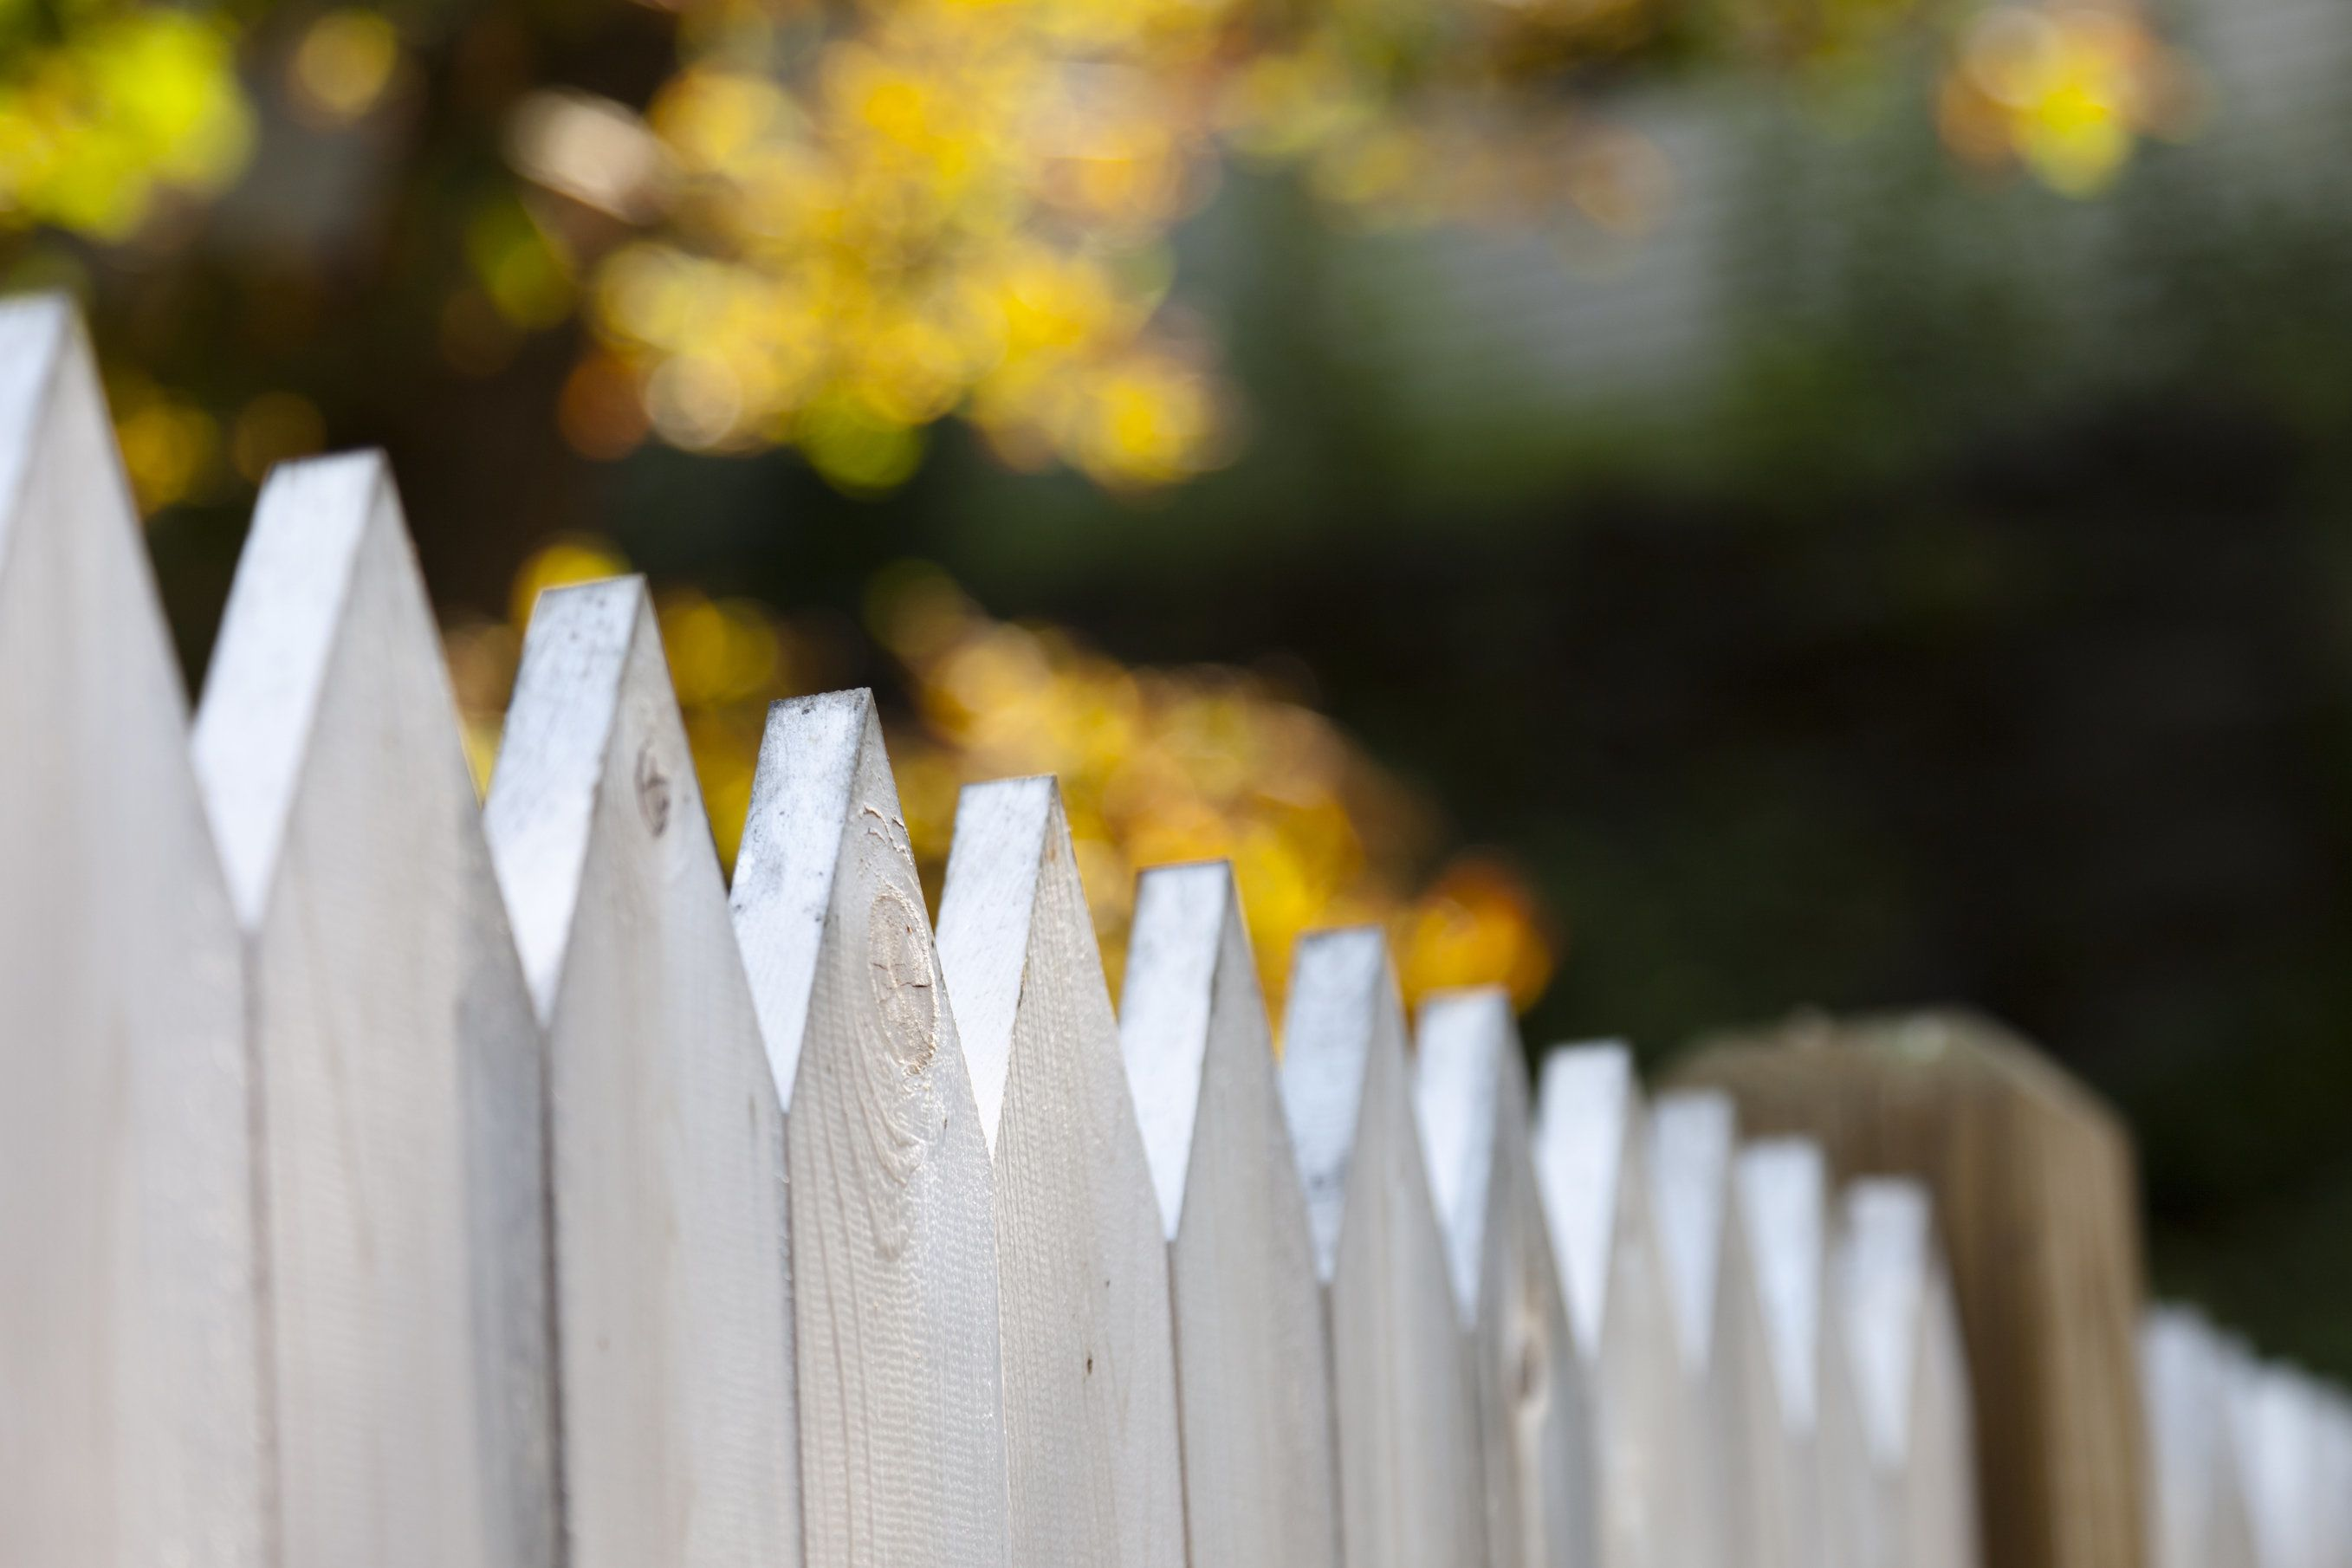 A fence between two residential properties